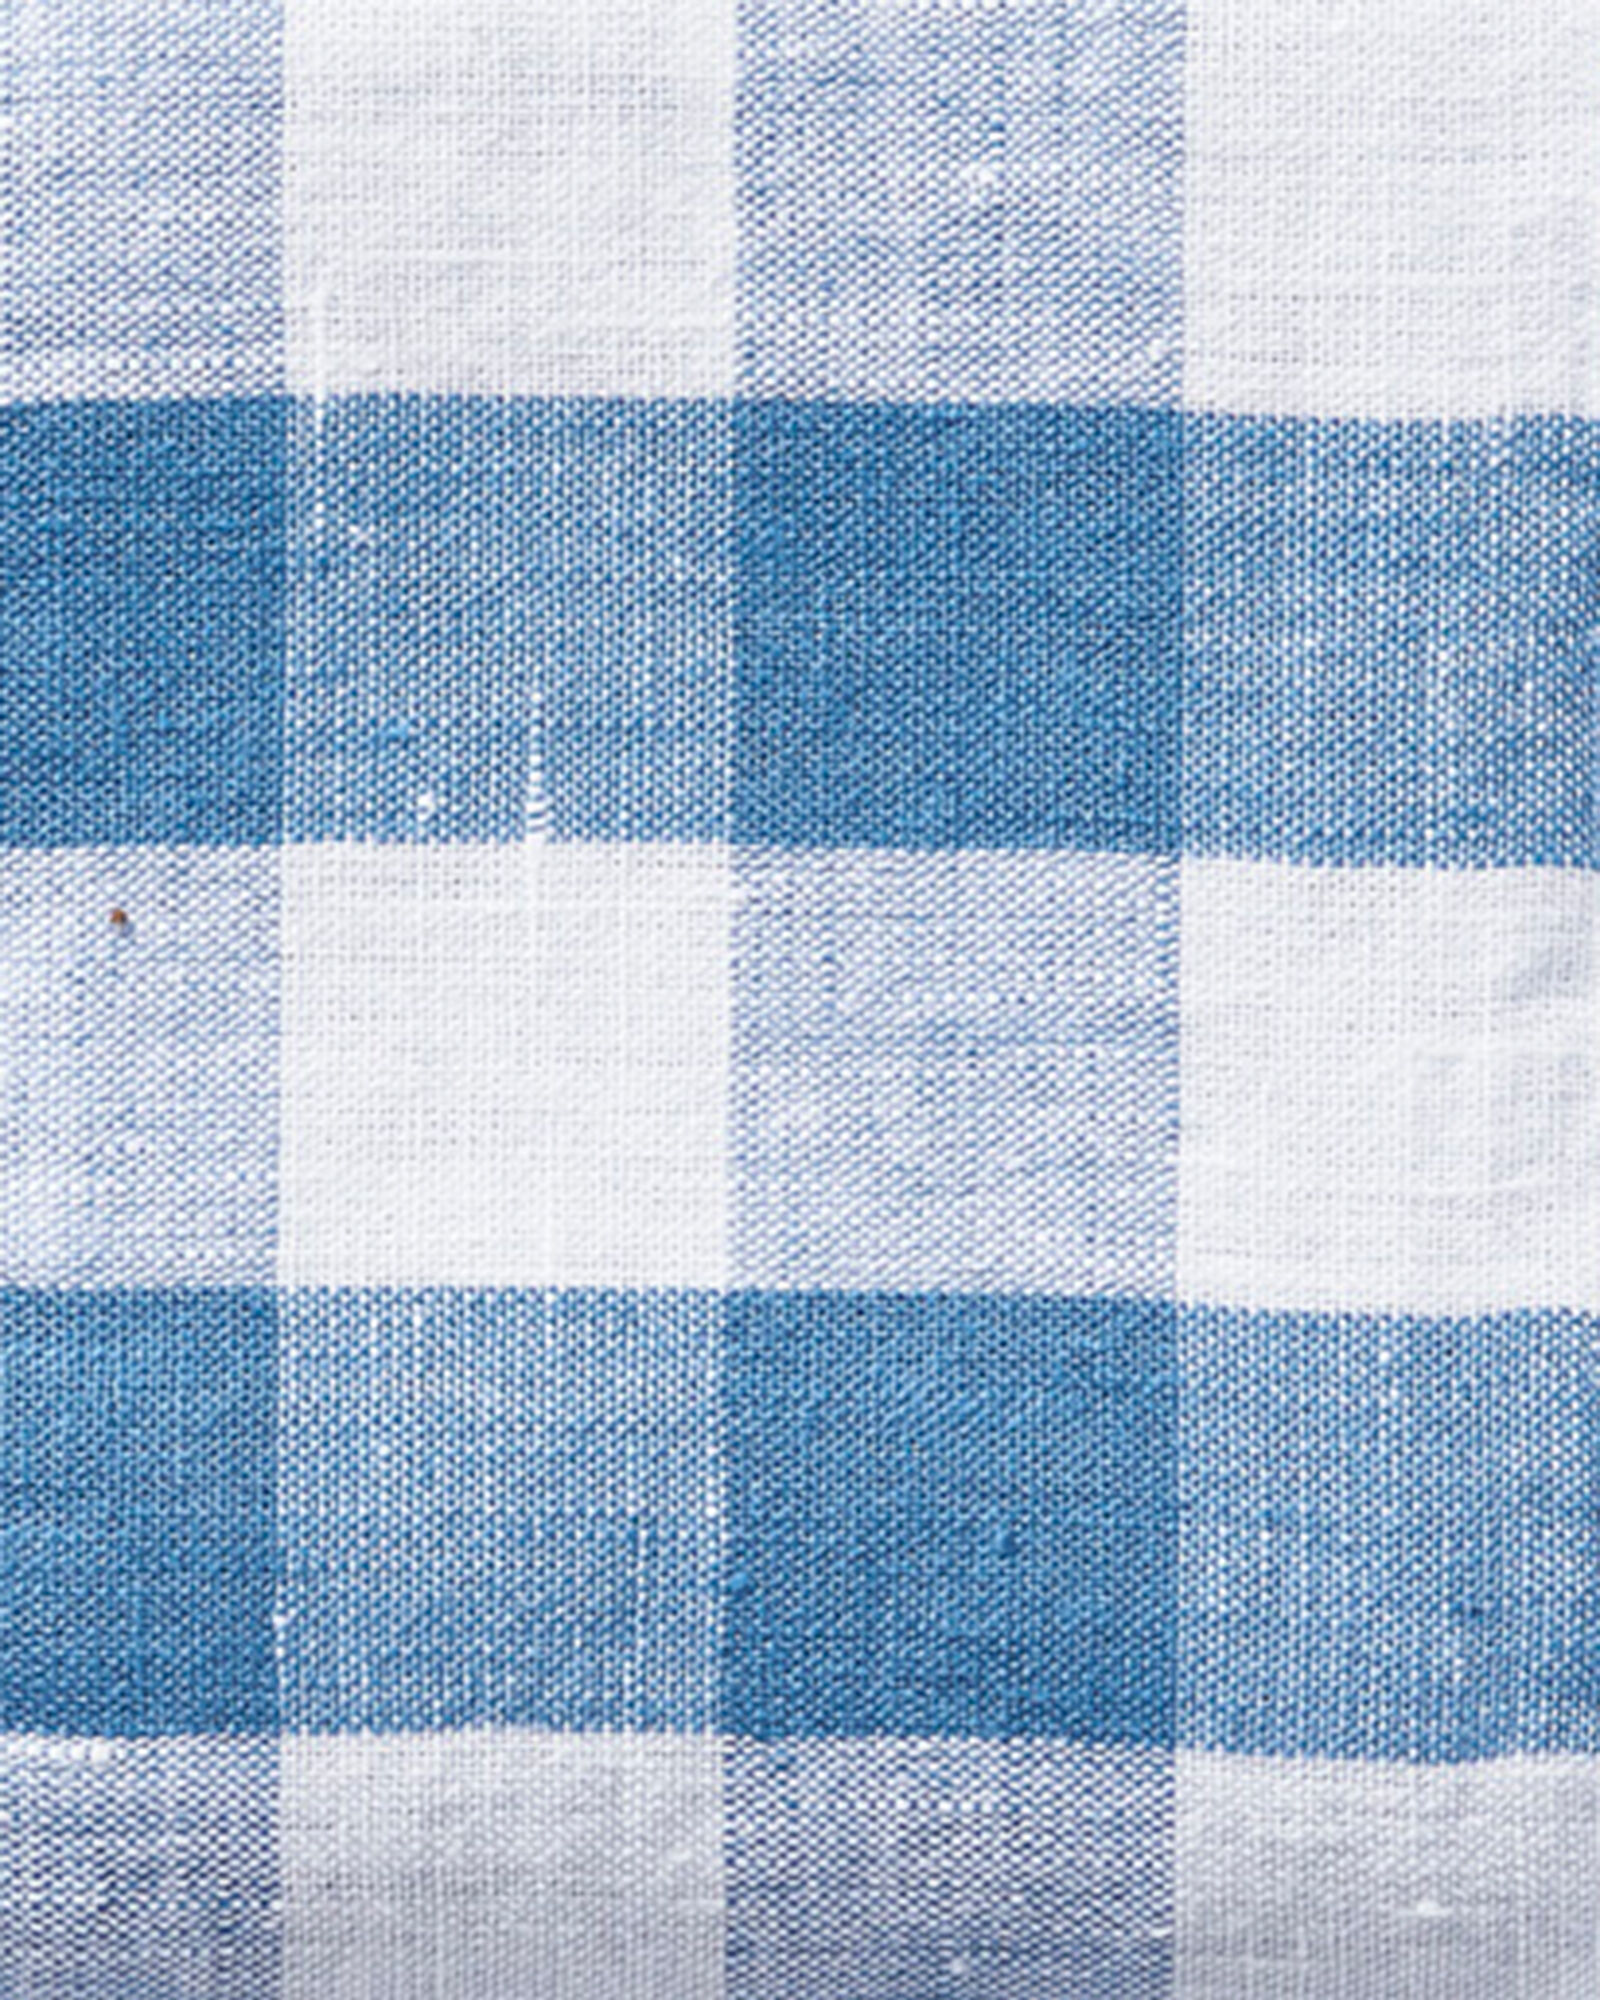 Hyannis Bedding Swatch, French Blue